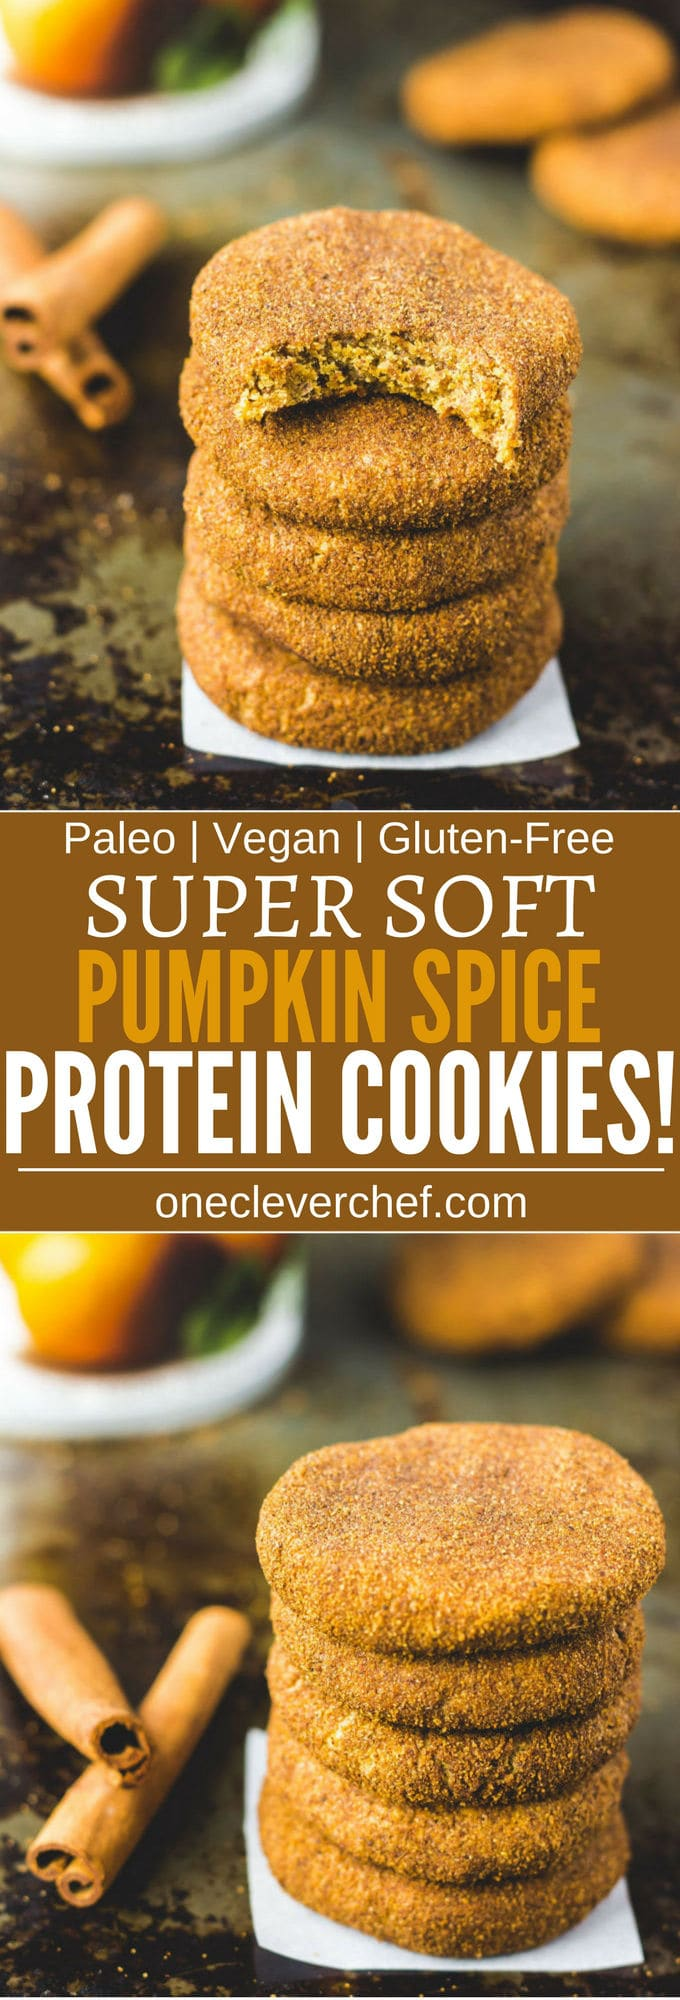 These paleo pumpkin spice protein cookies are soft, chewy and so tasty. Looking for the perfect fall treat? These are the ones. Protein-packed, easy to make and super healthy, these delicious snickerdoodle protein cookies are also paleo, vegan, gluten-free, dairy-free, flourless, grain-free and egg-free. | onecleverchef.com